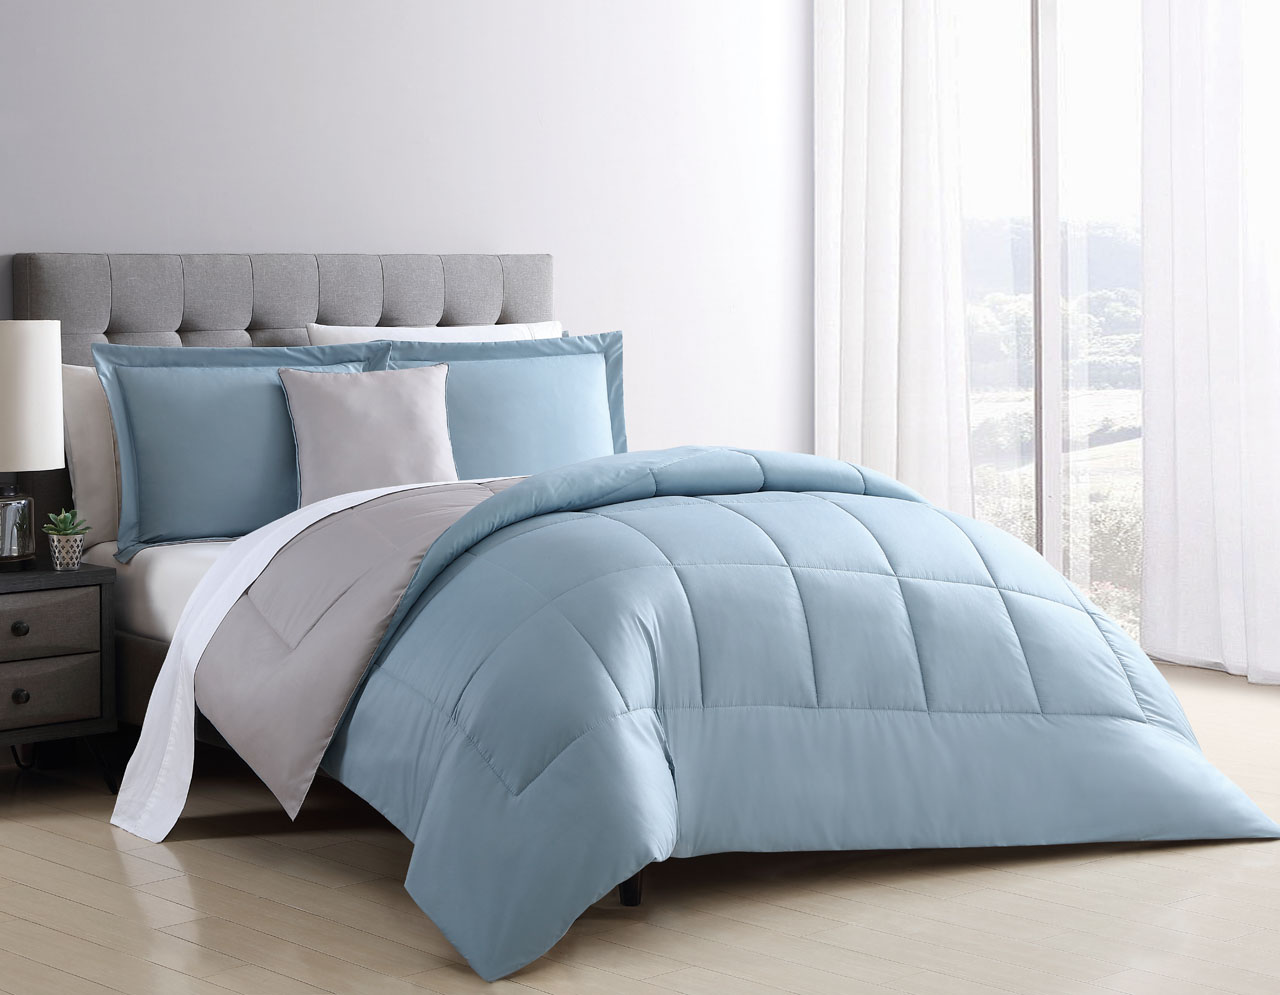 8 Piece Carter Blue/Stone Reversible Bed In A Bag Set